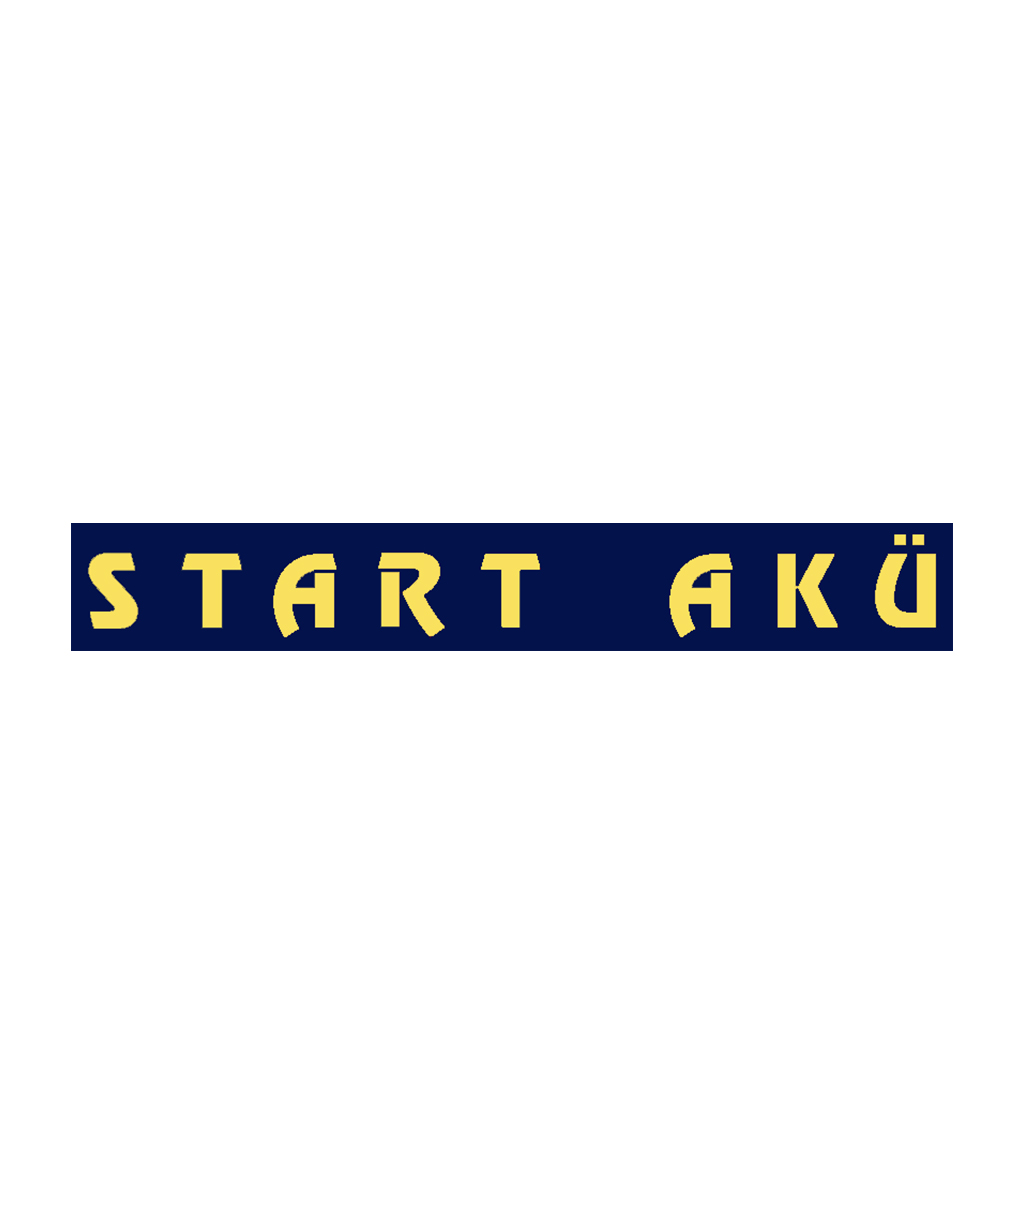 START AKÜ SAN ve TİC. LTD. ŞTİ